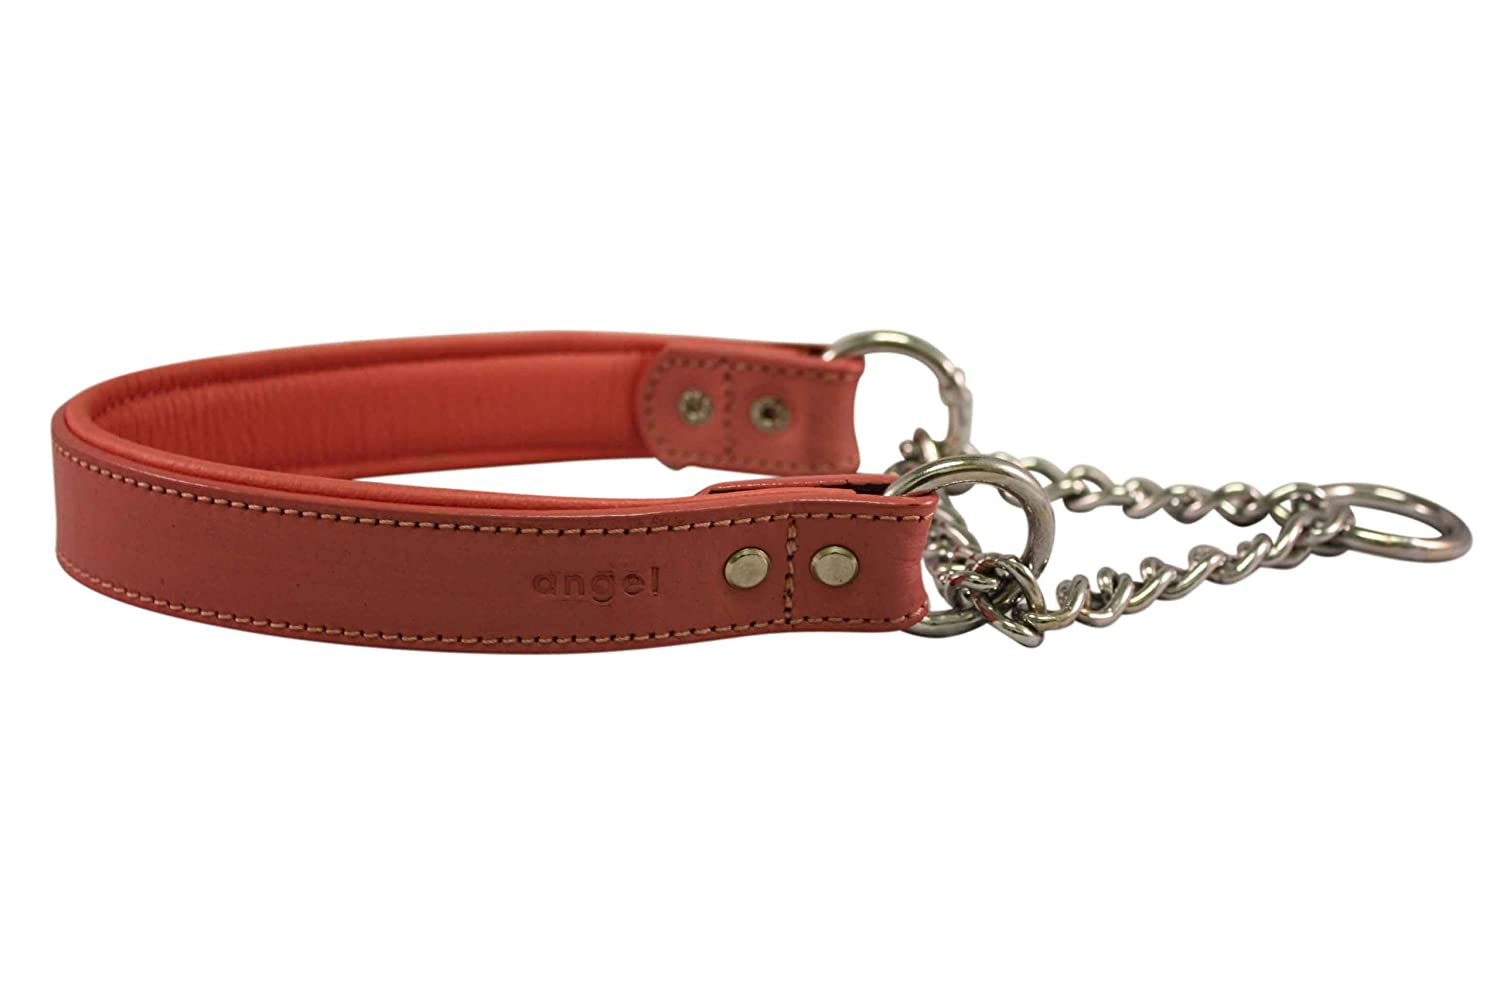 Leather Martingale Dog Collar Choker 18x1 (23.5 Fully Extended) Pink Leather (Rio) with Stainless Steel. Read Description for Correct Sizing